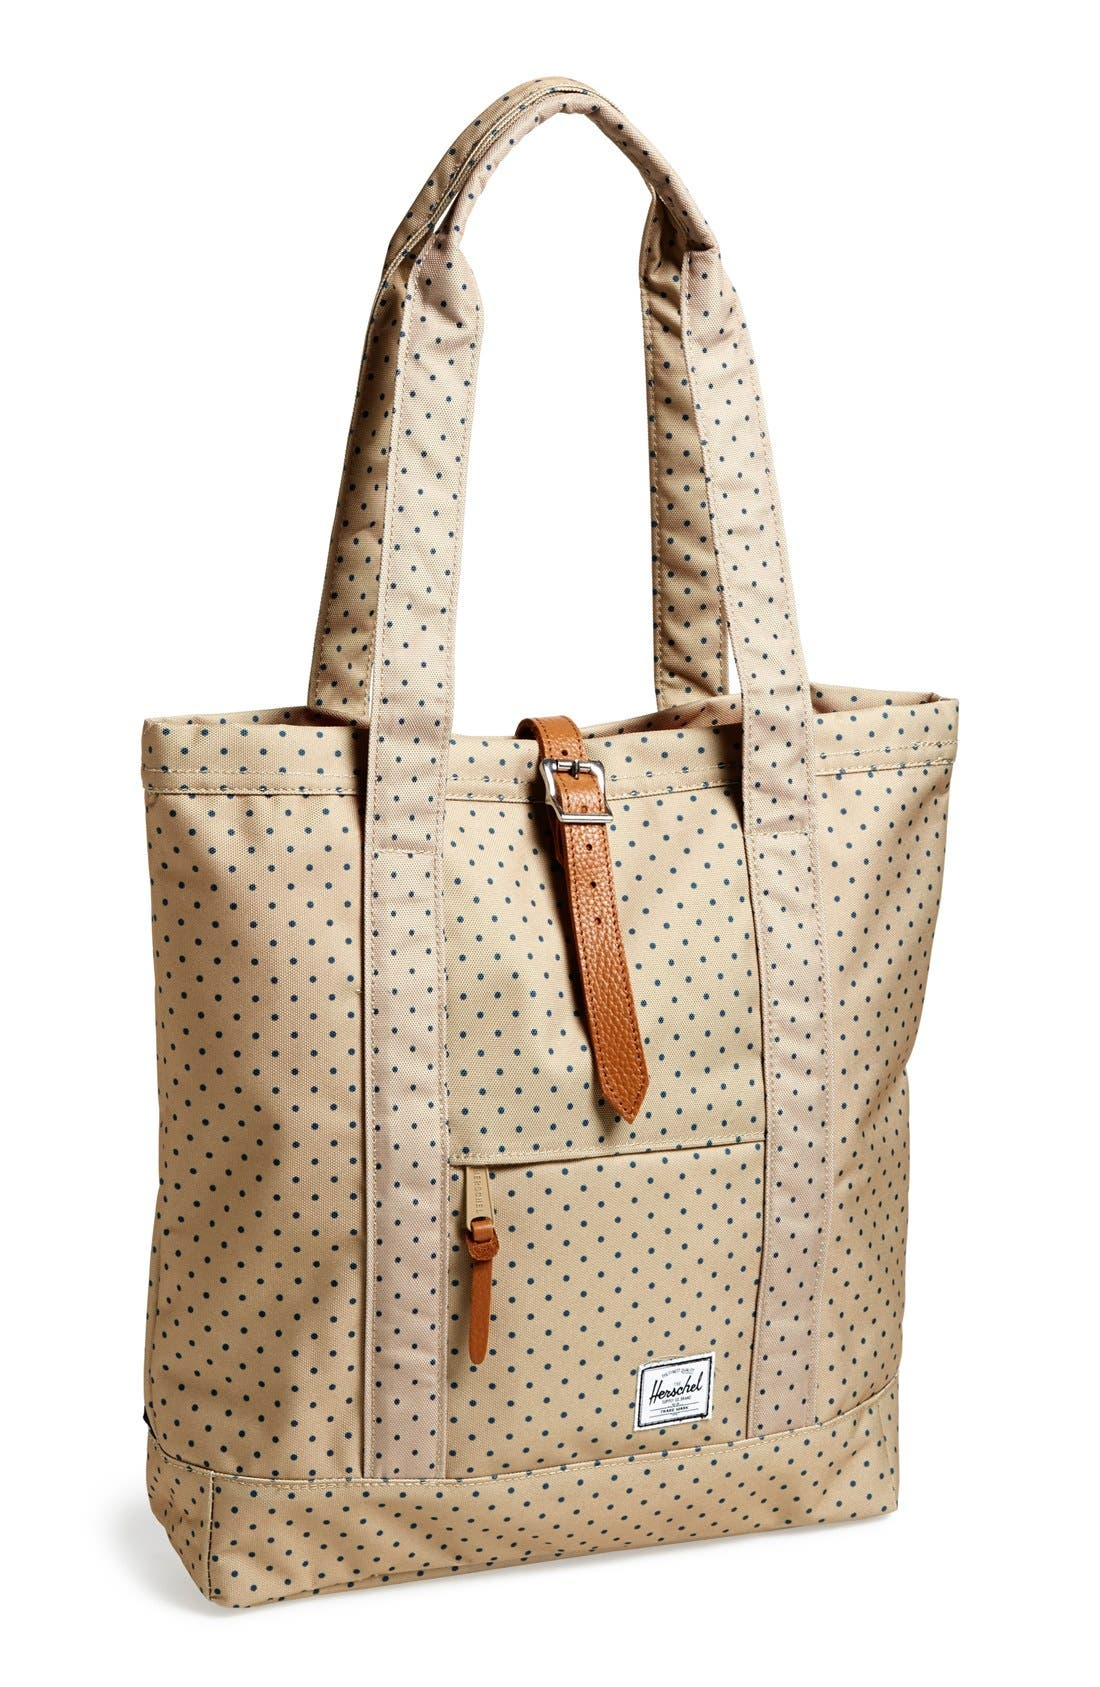 Main Image - Herschel Supply Co. 'Market' Tote Bag